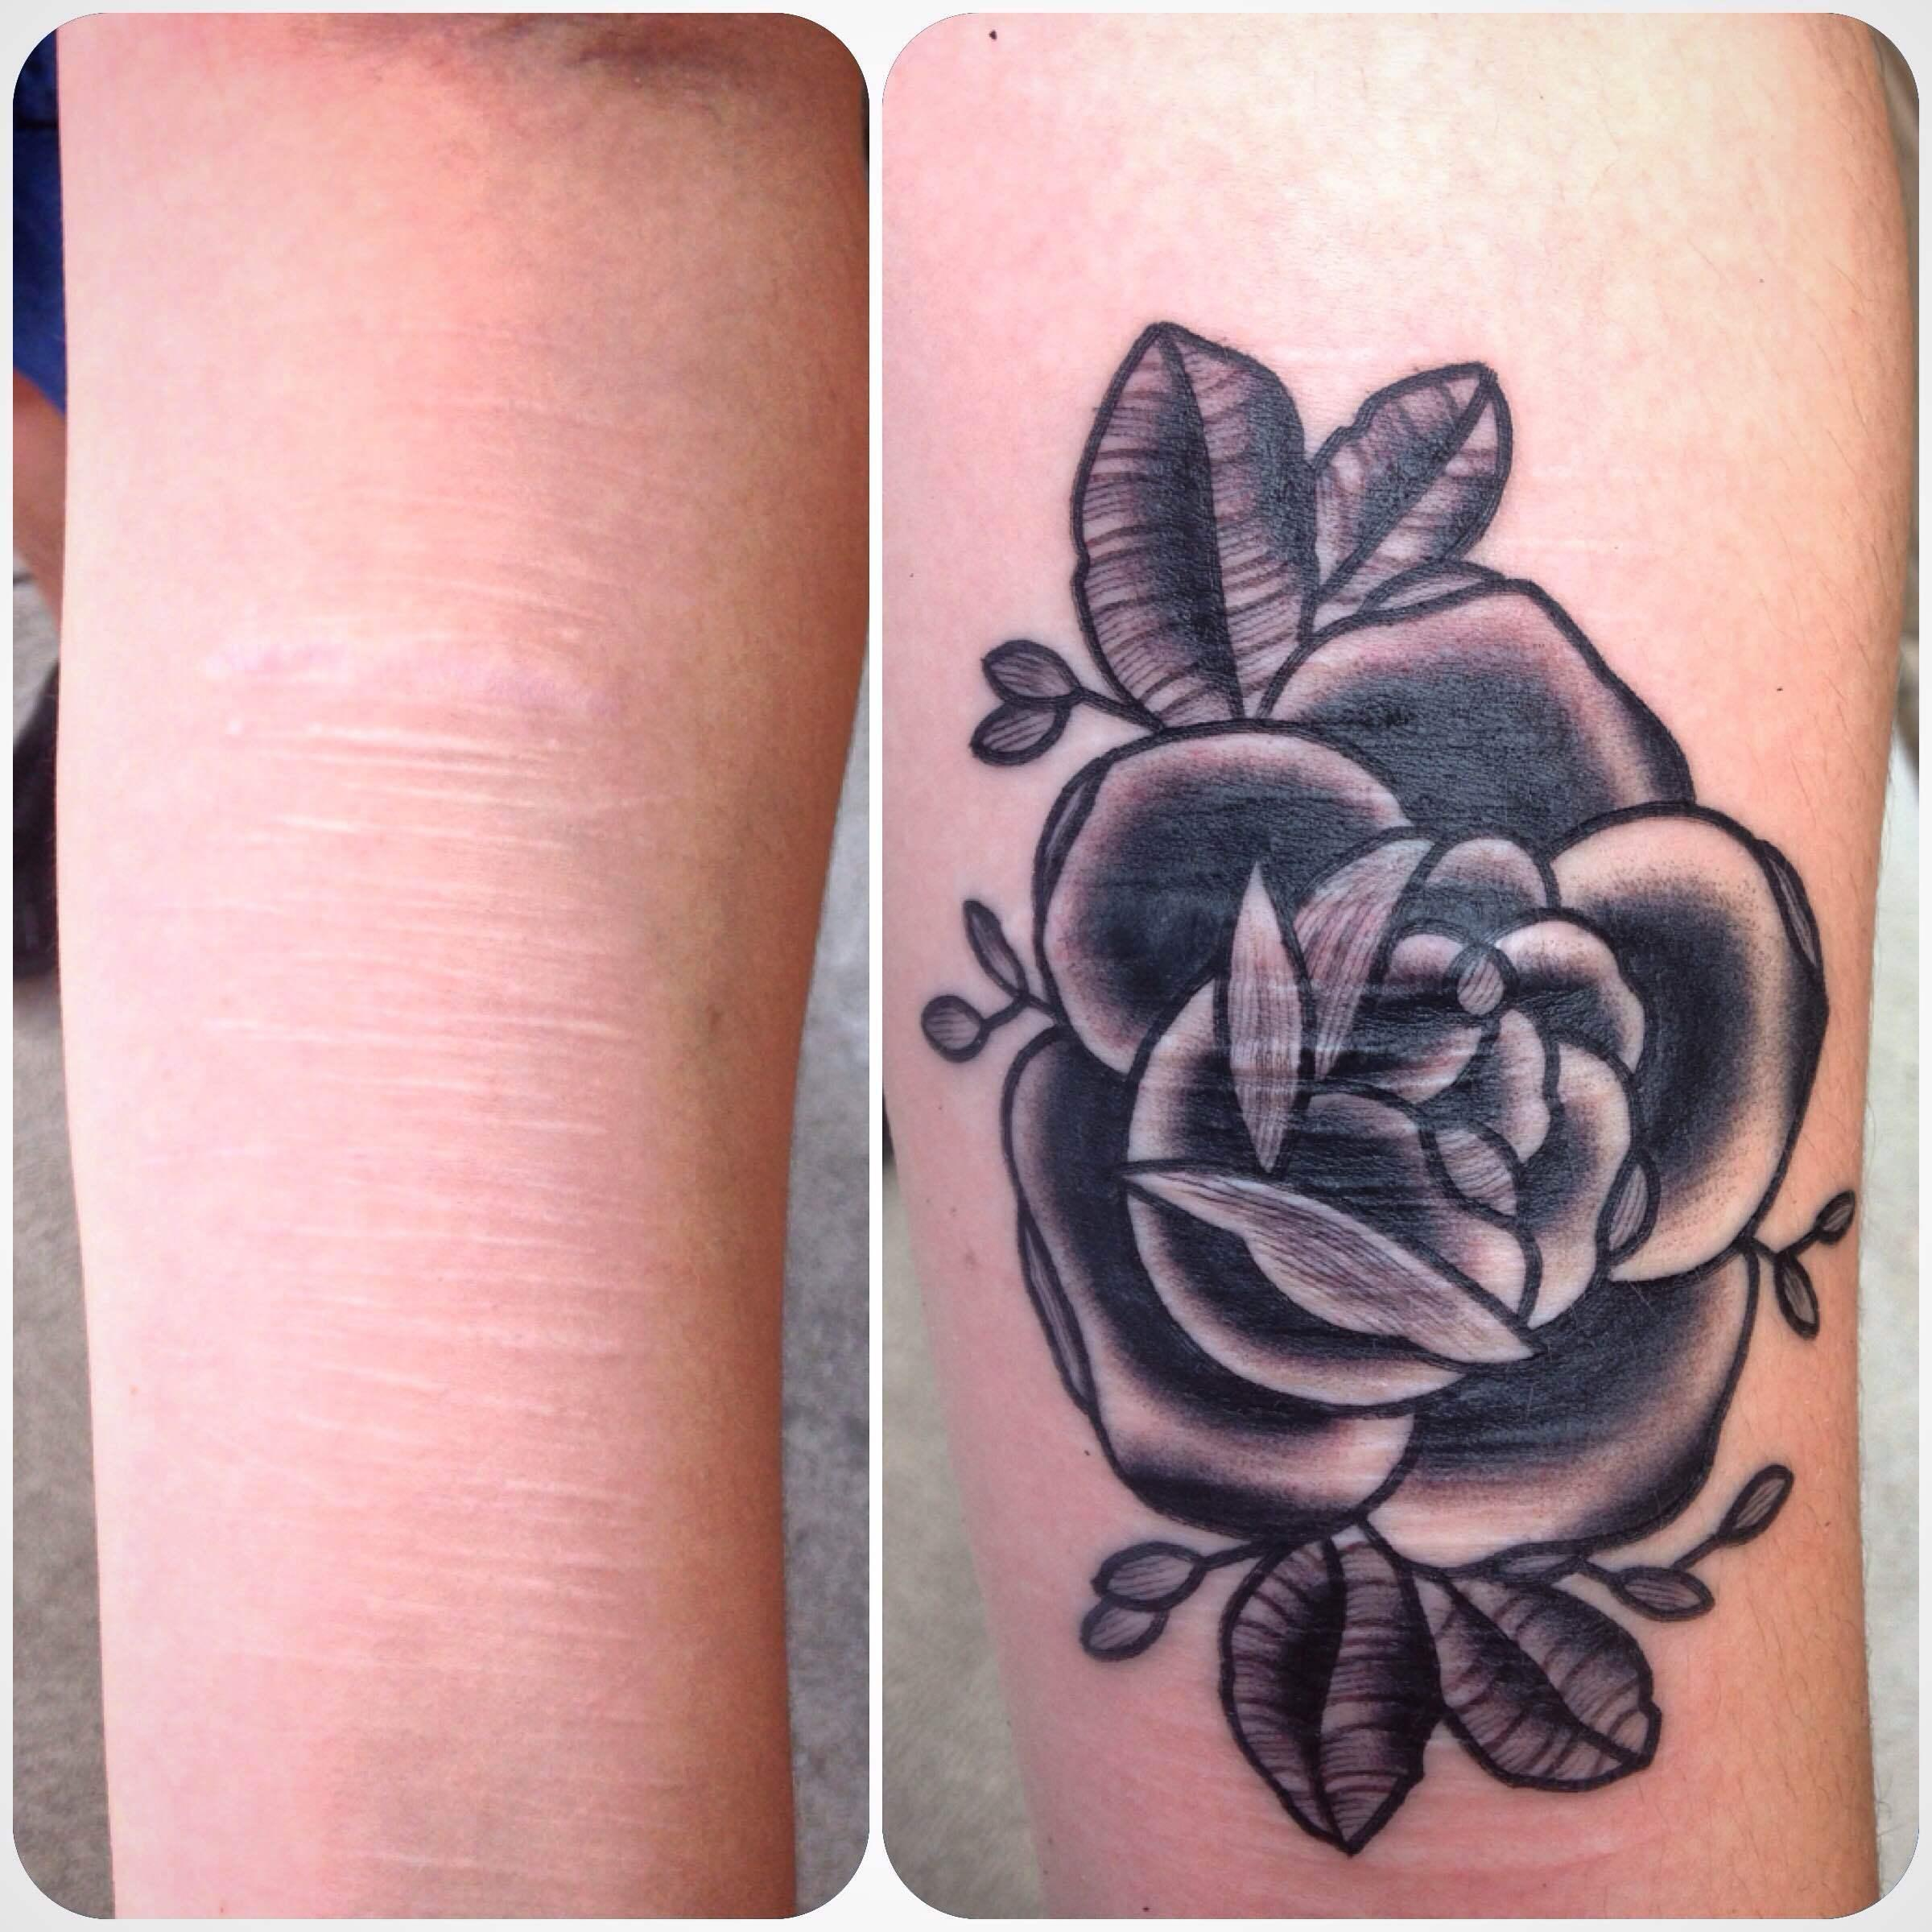 Effects Of Toledo Tattoo Artist\'s Work Are More Than Skin Deep | WUNC